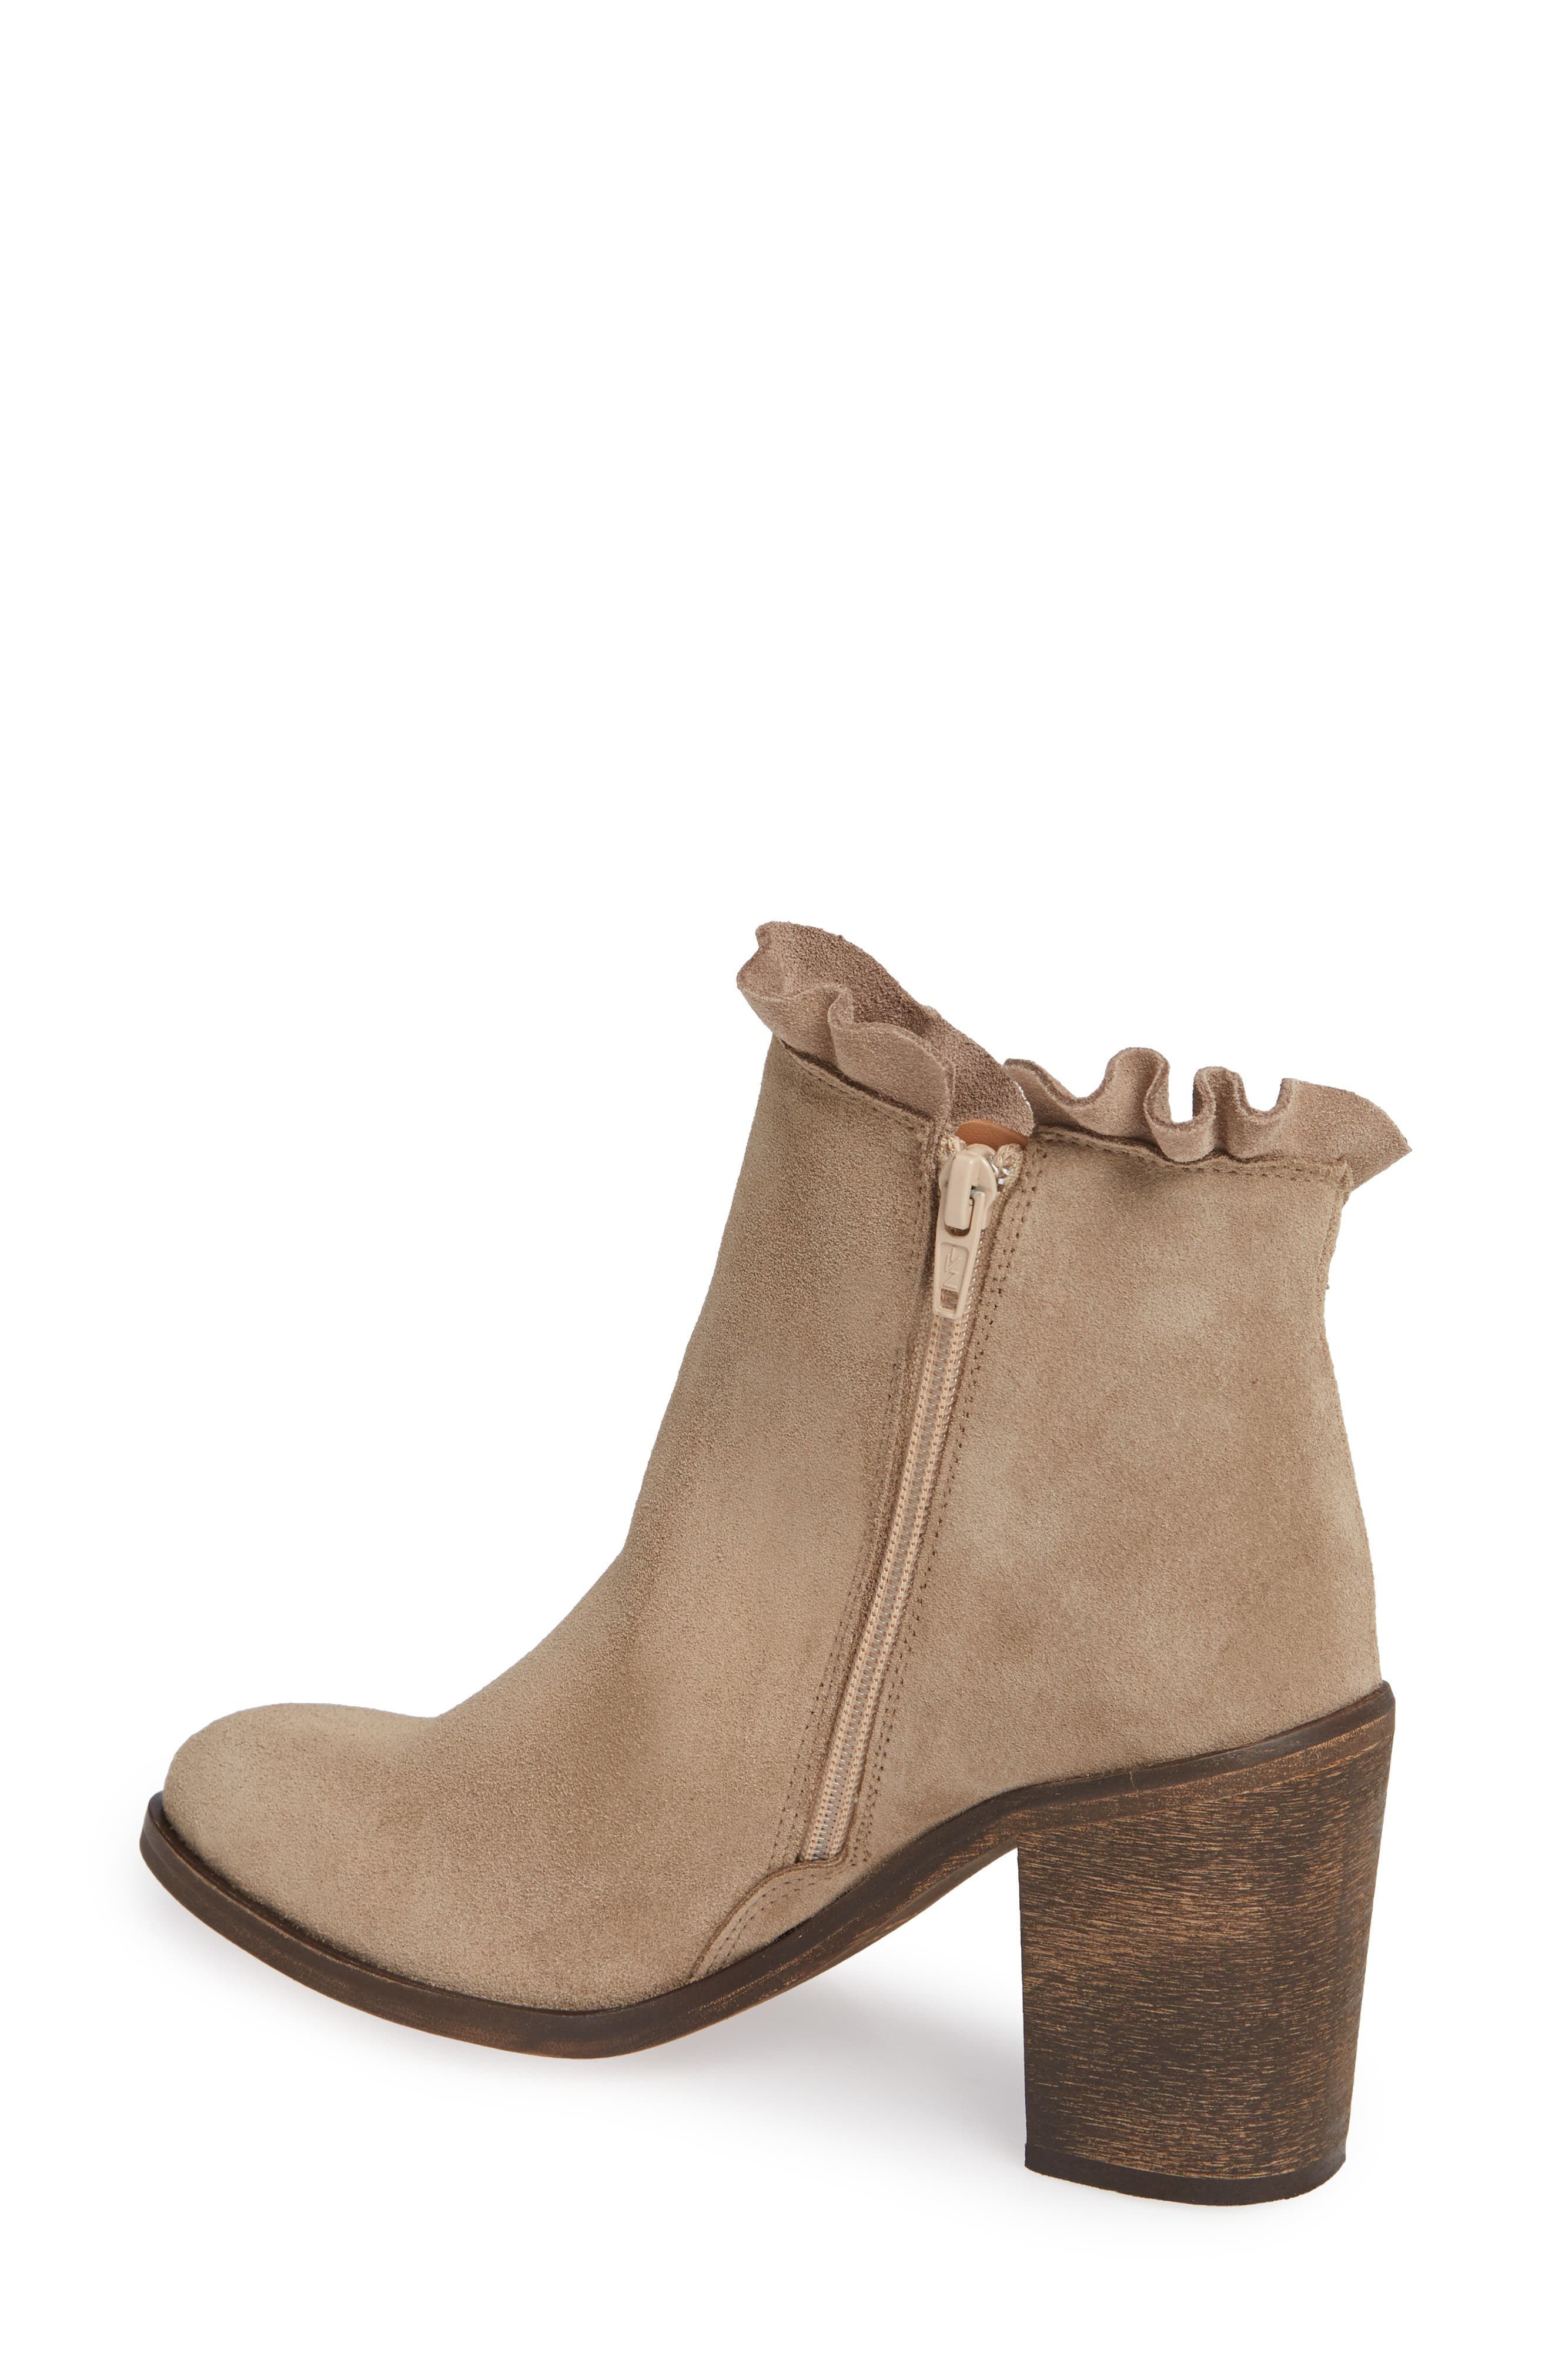 Bellamy Bootie,                             Alternate thumbnail 2, color,                             TAUPE SUEDE